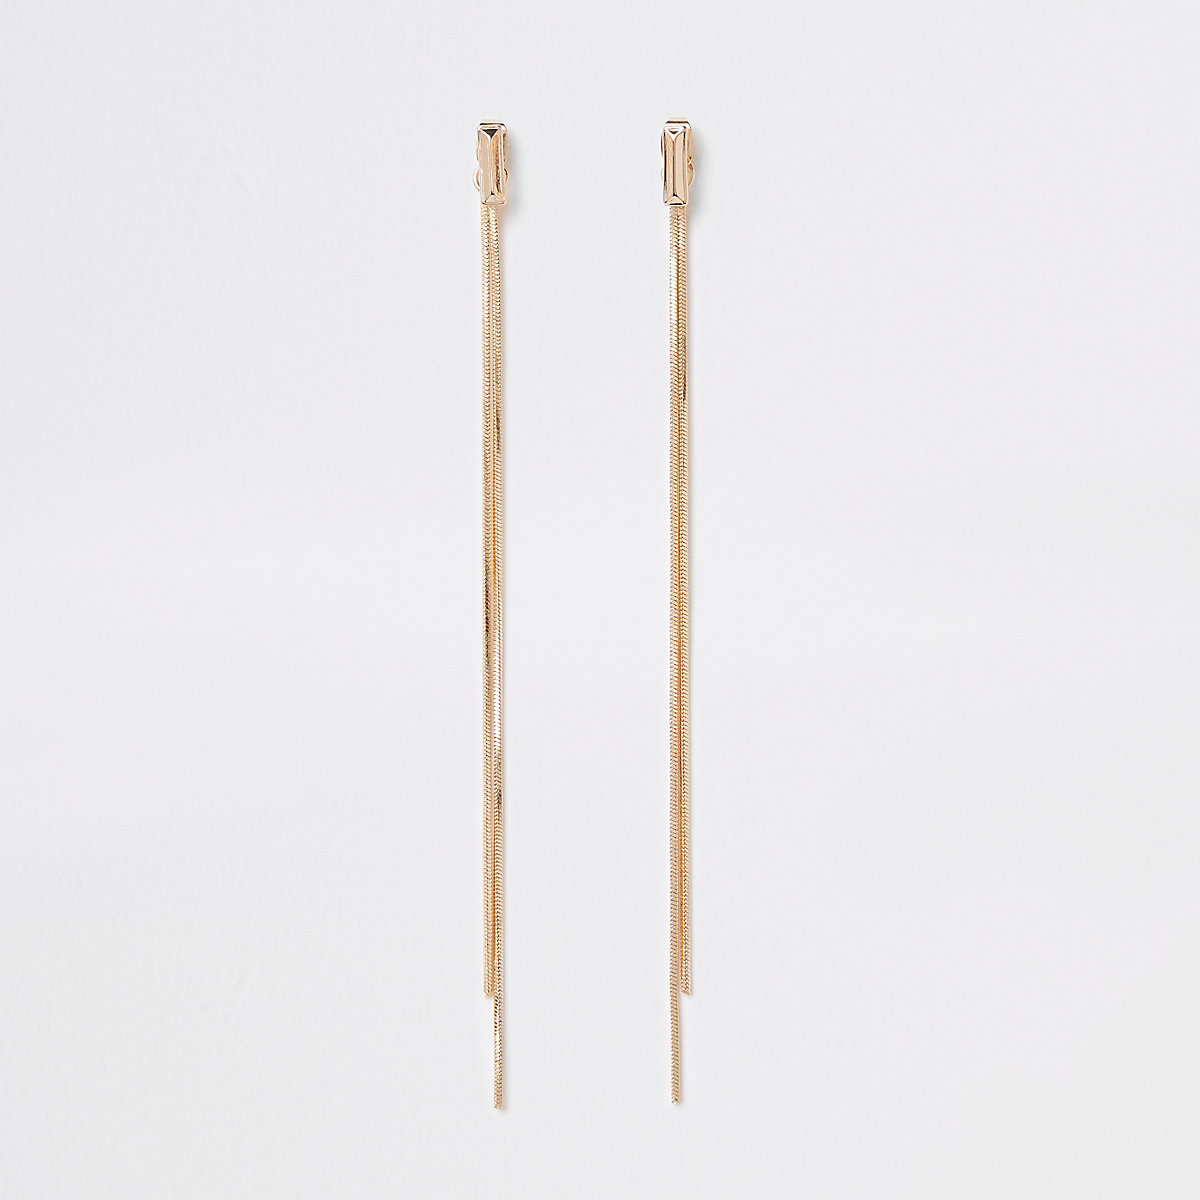 Gold colour sleek front and back earrings